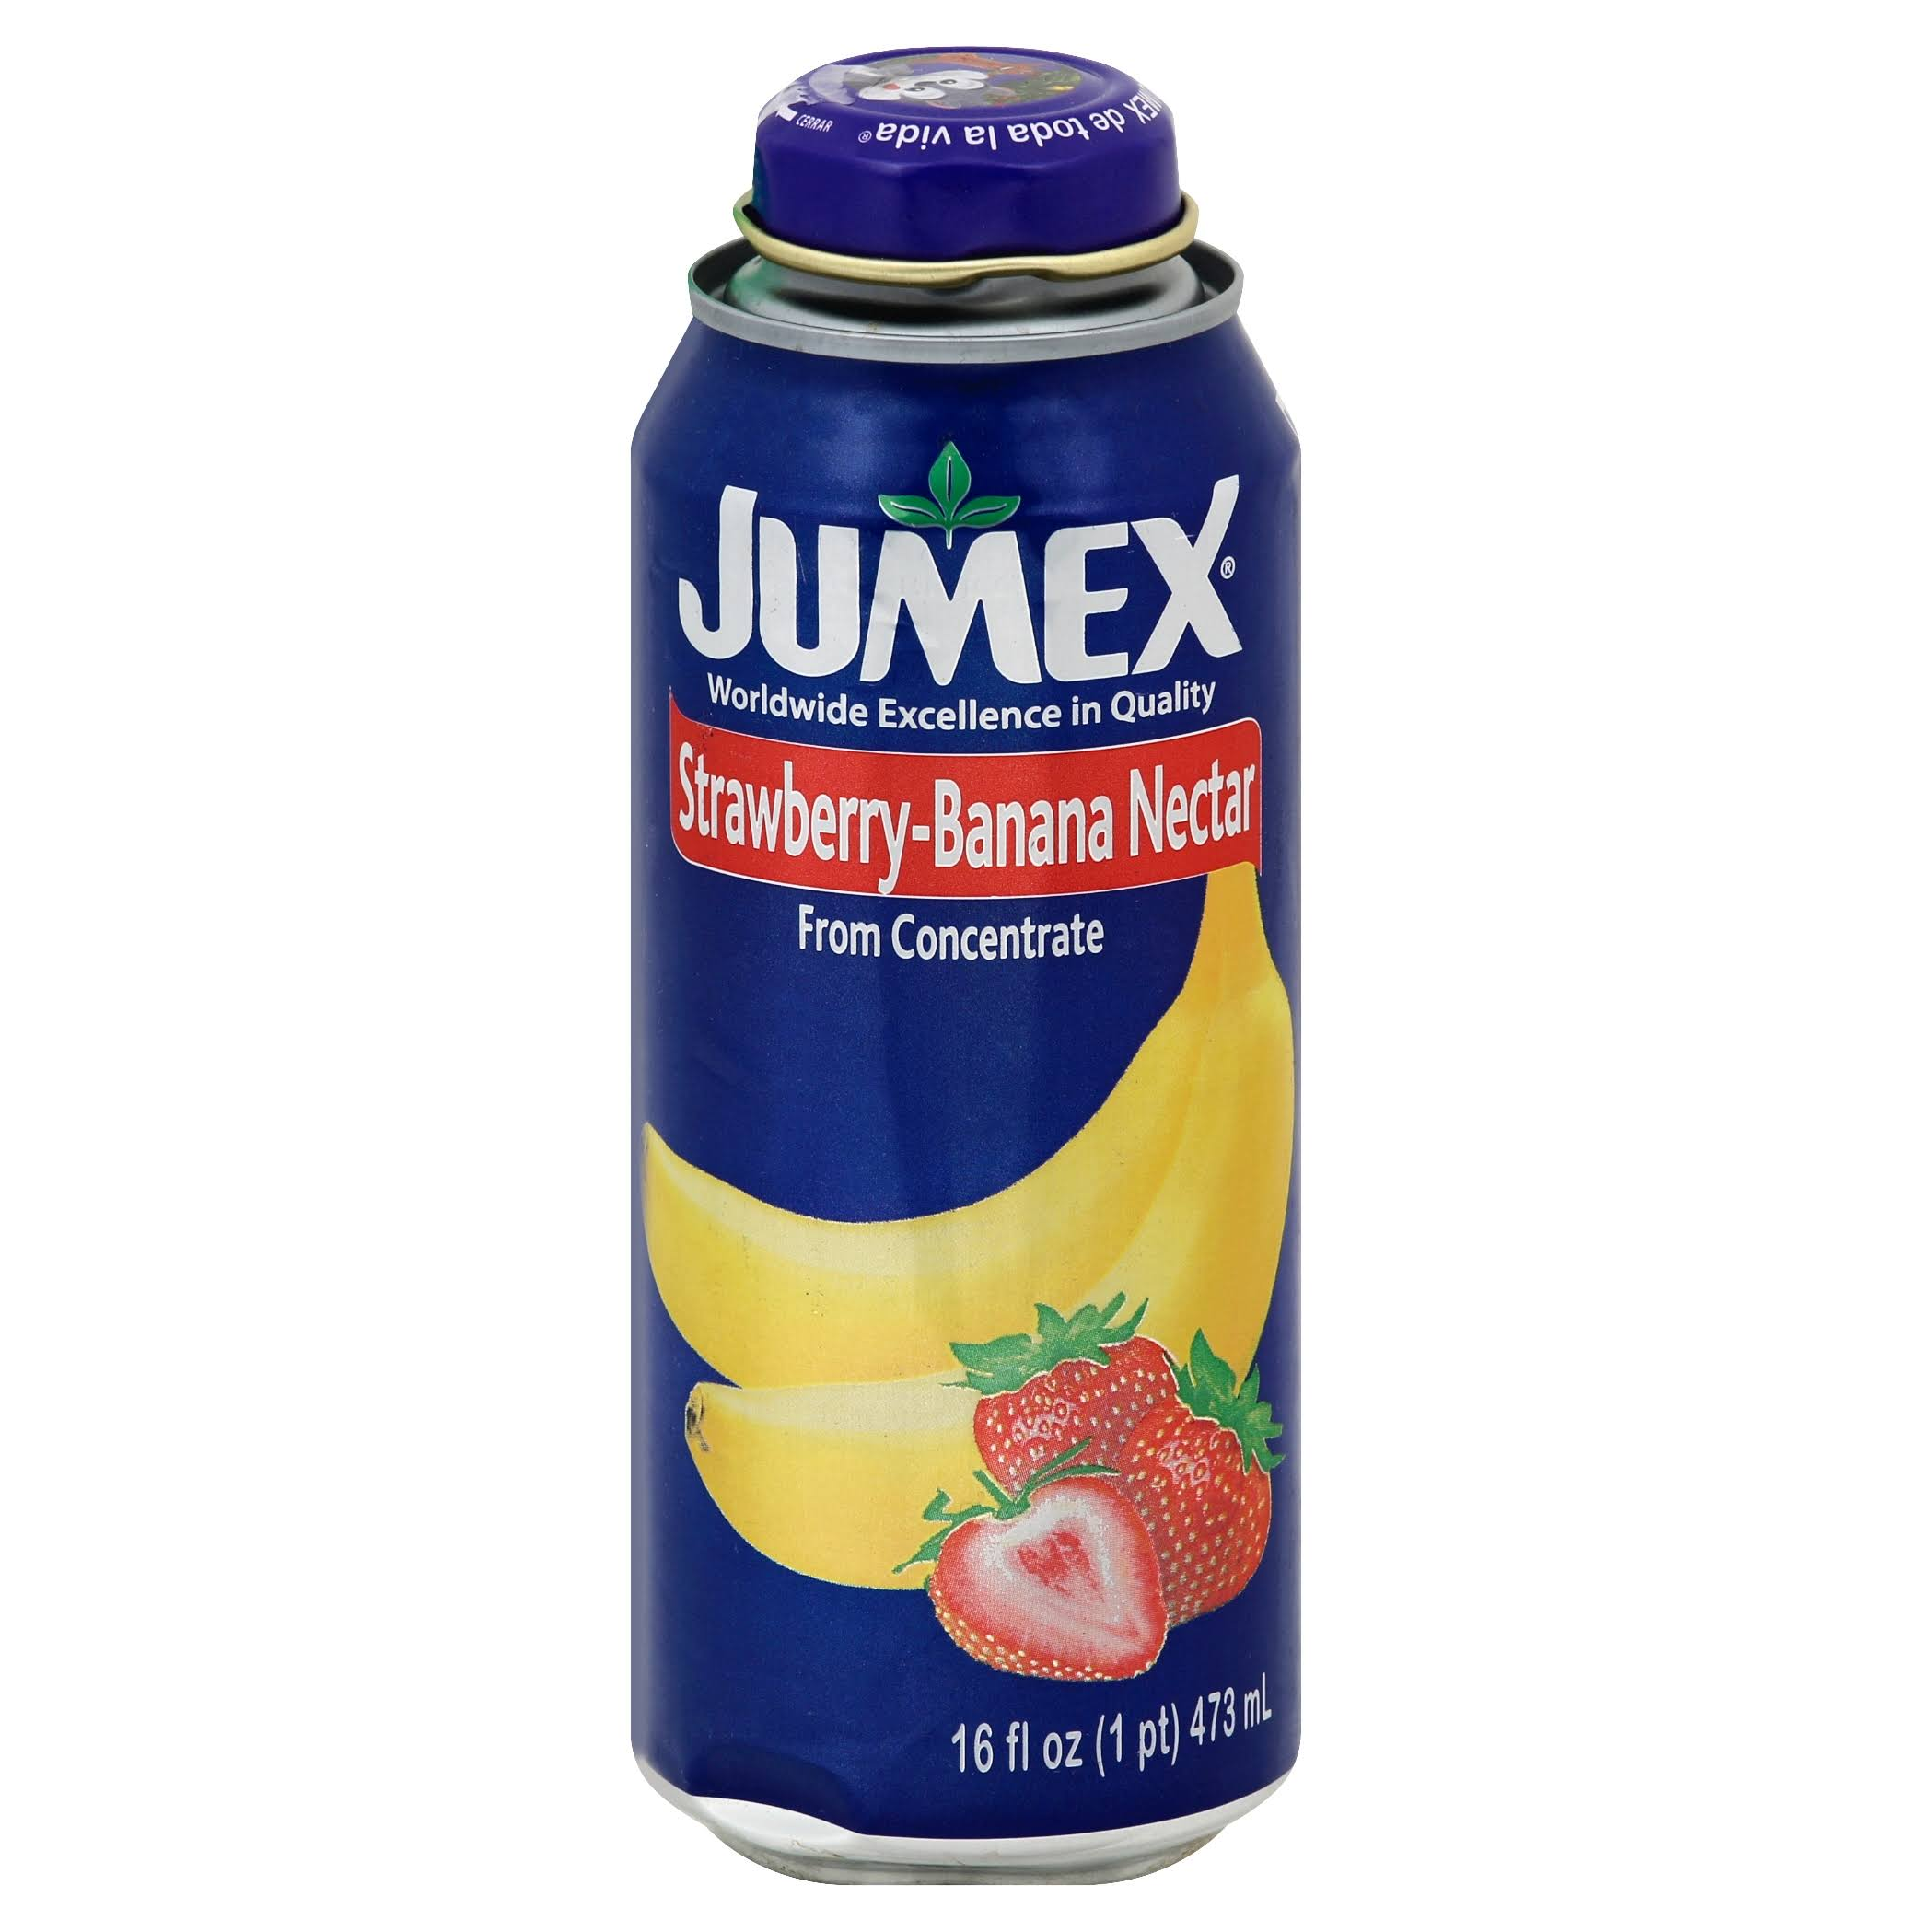 Jumex Nectar - Strawberry Banana